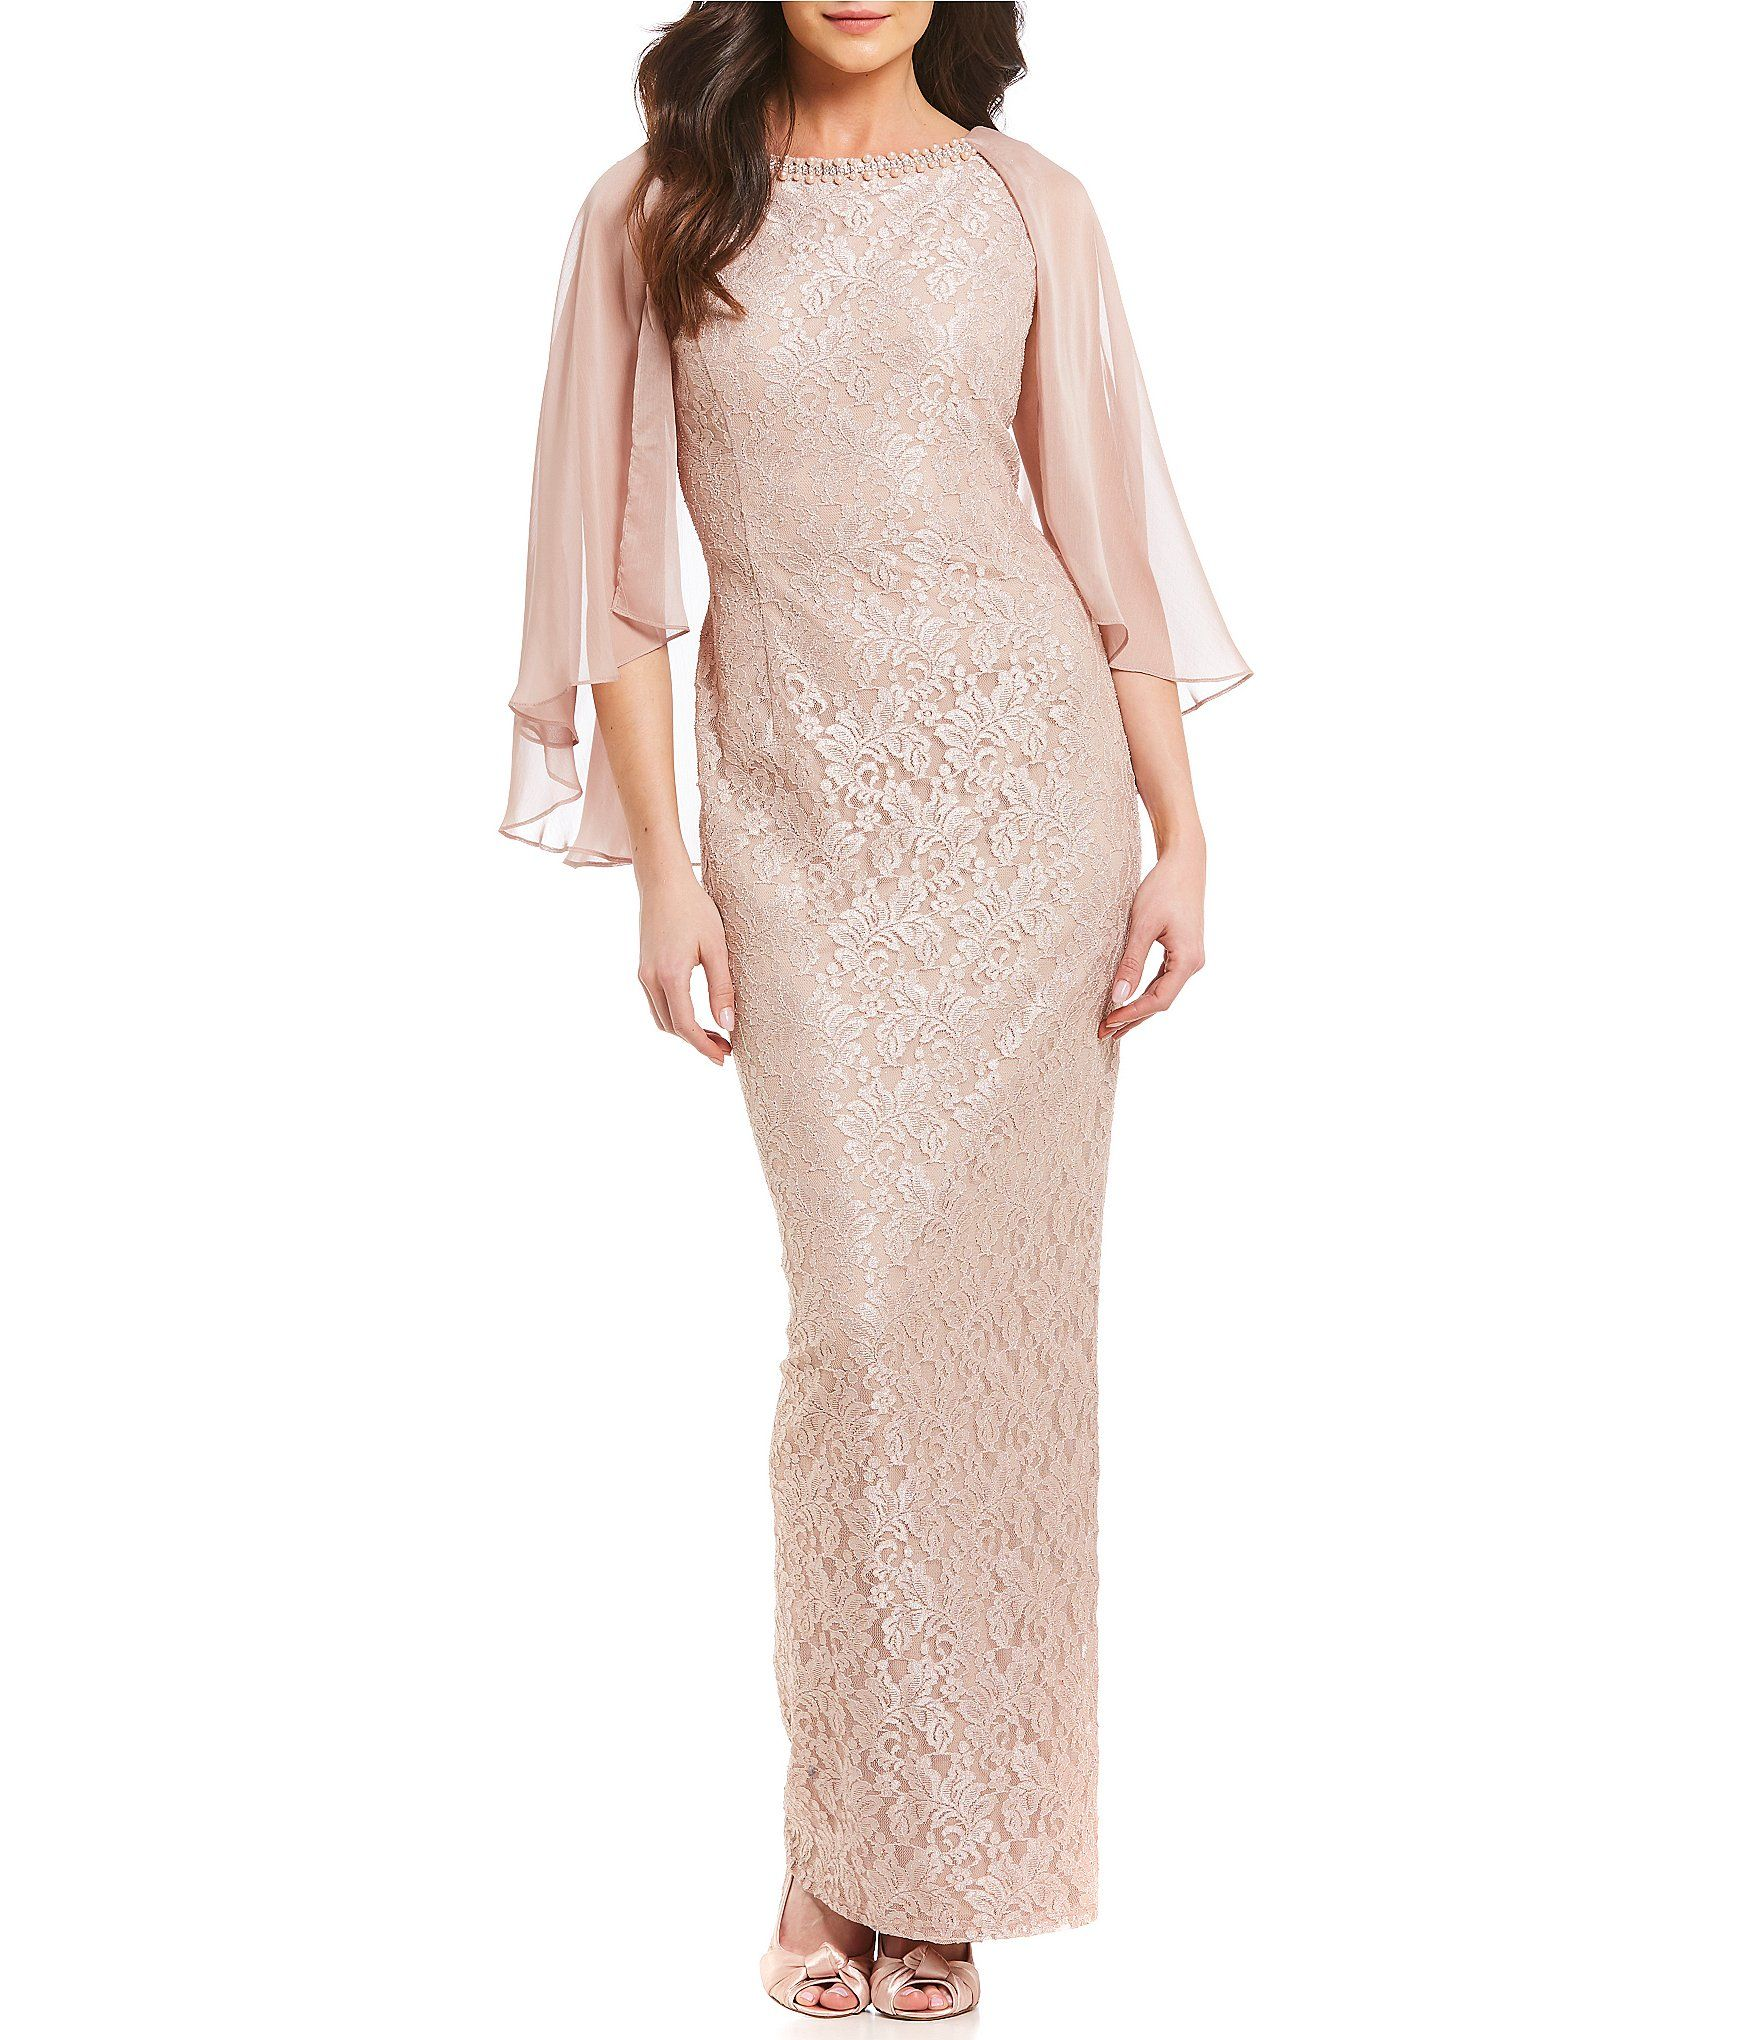 Shop for Ignite Evenings Glitter Lace Capelet Gown at Dillards.com ...